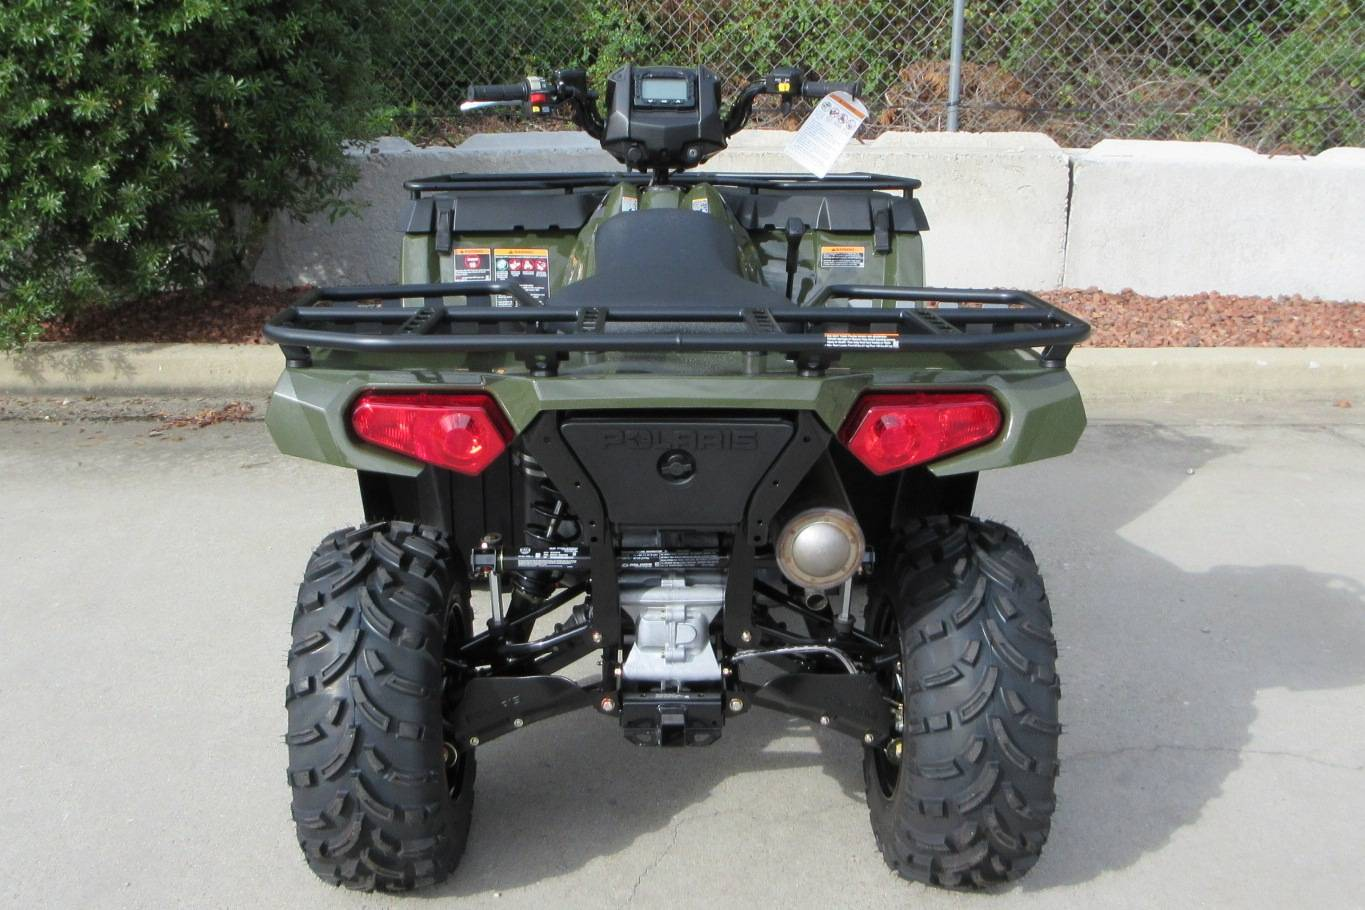 2020 Polaris Sportsman 450 H.O. Utility Package in Sumter, South Carolina - Photo 7